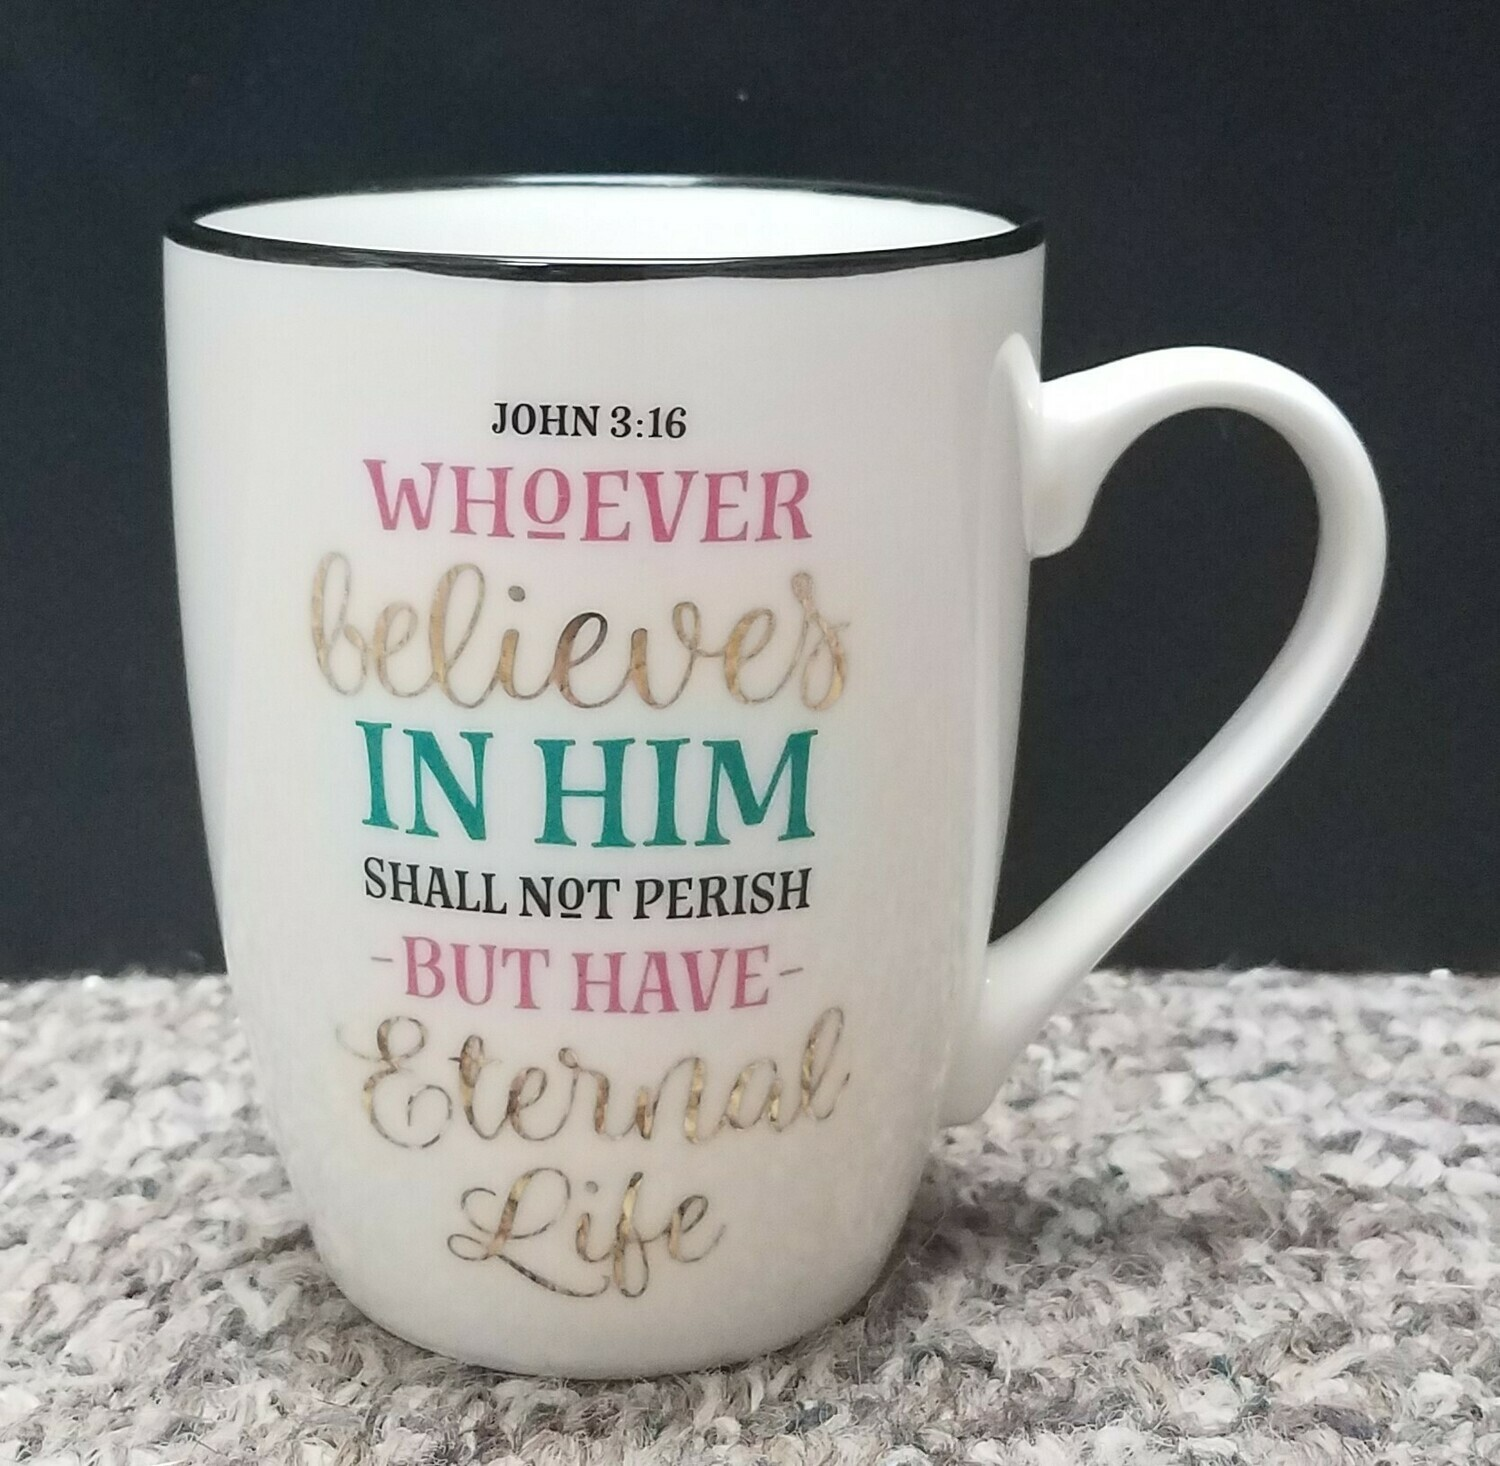 Whoever Believes in Him Shall Not Perish But Have Eternal Live Coffee Mug